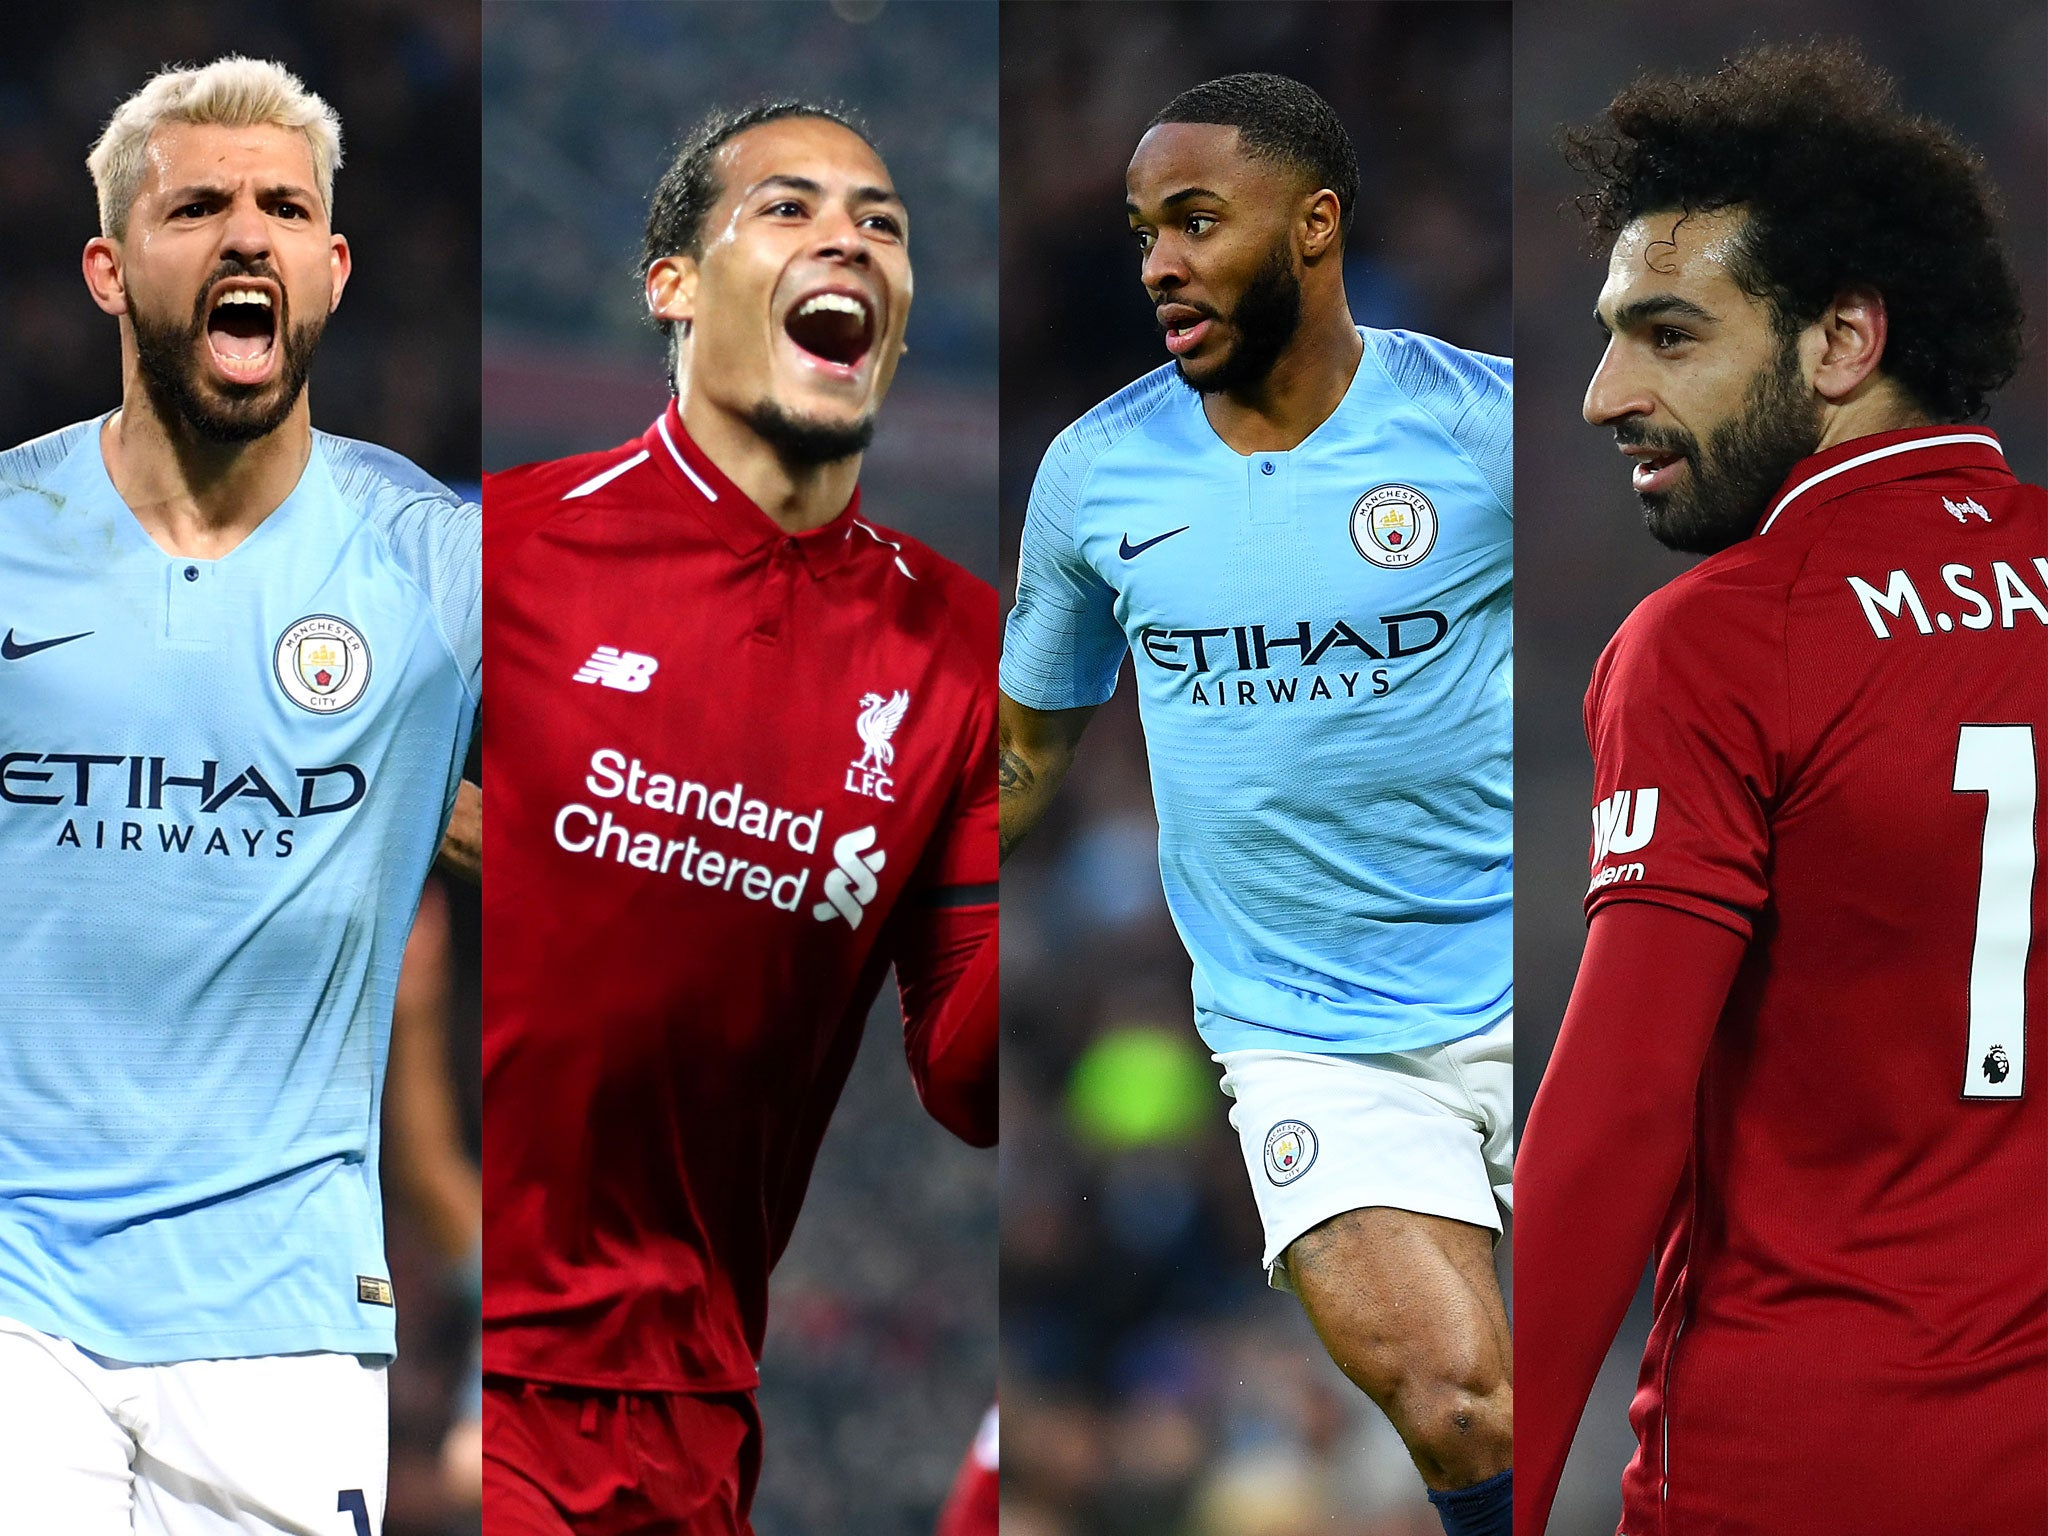 5f539aedf Premier League title race fixtures  Who has the best run-in - Man City or  Liverpool